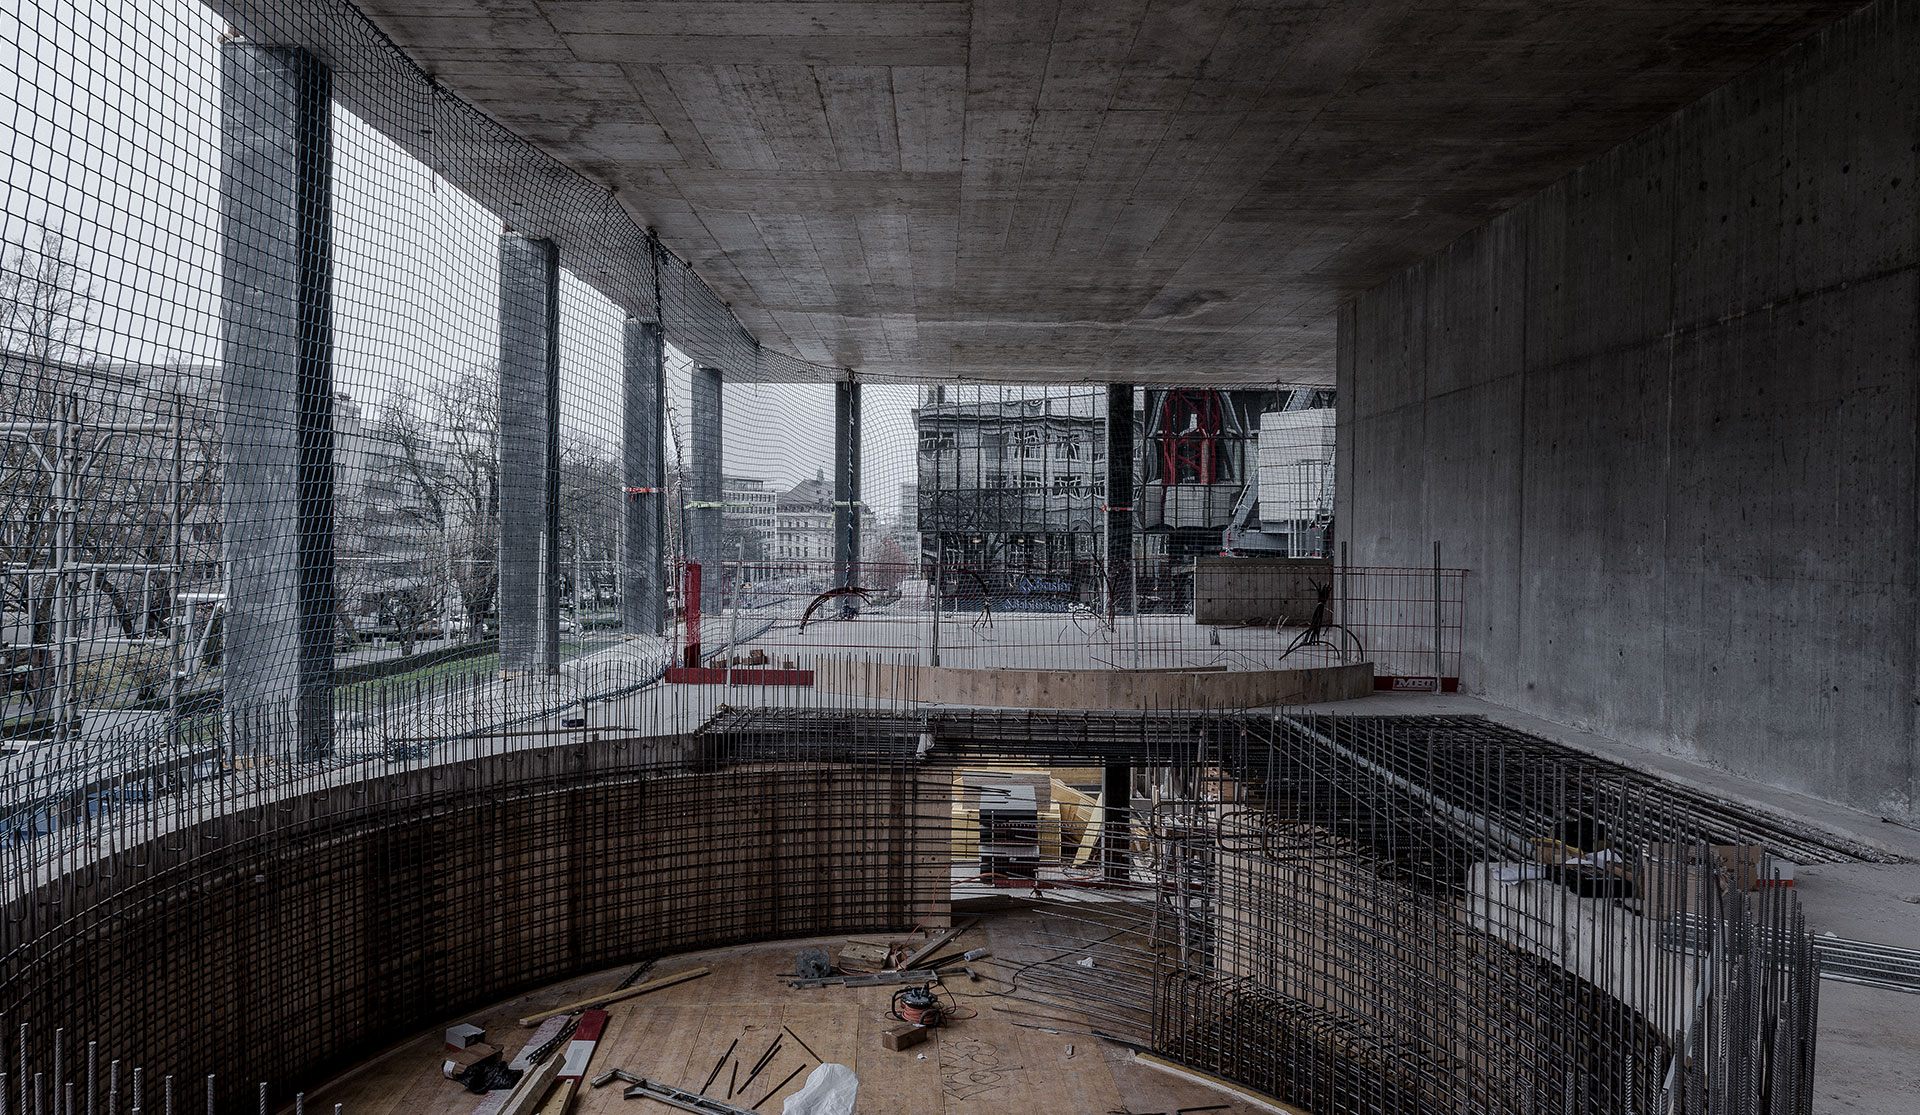 Mövenpick - Basel (CH), March 2018 - Opening 2020